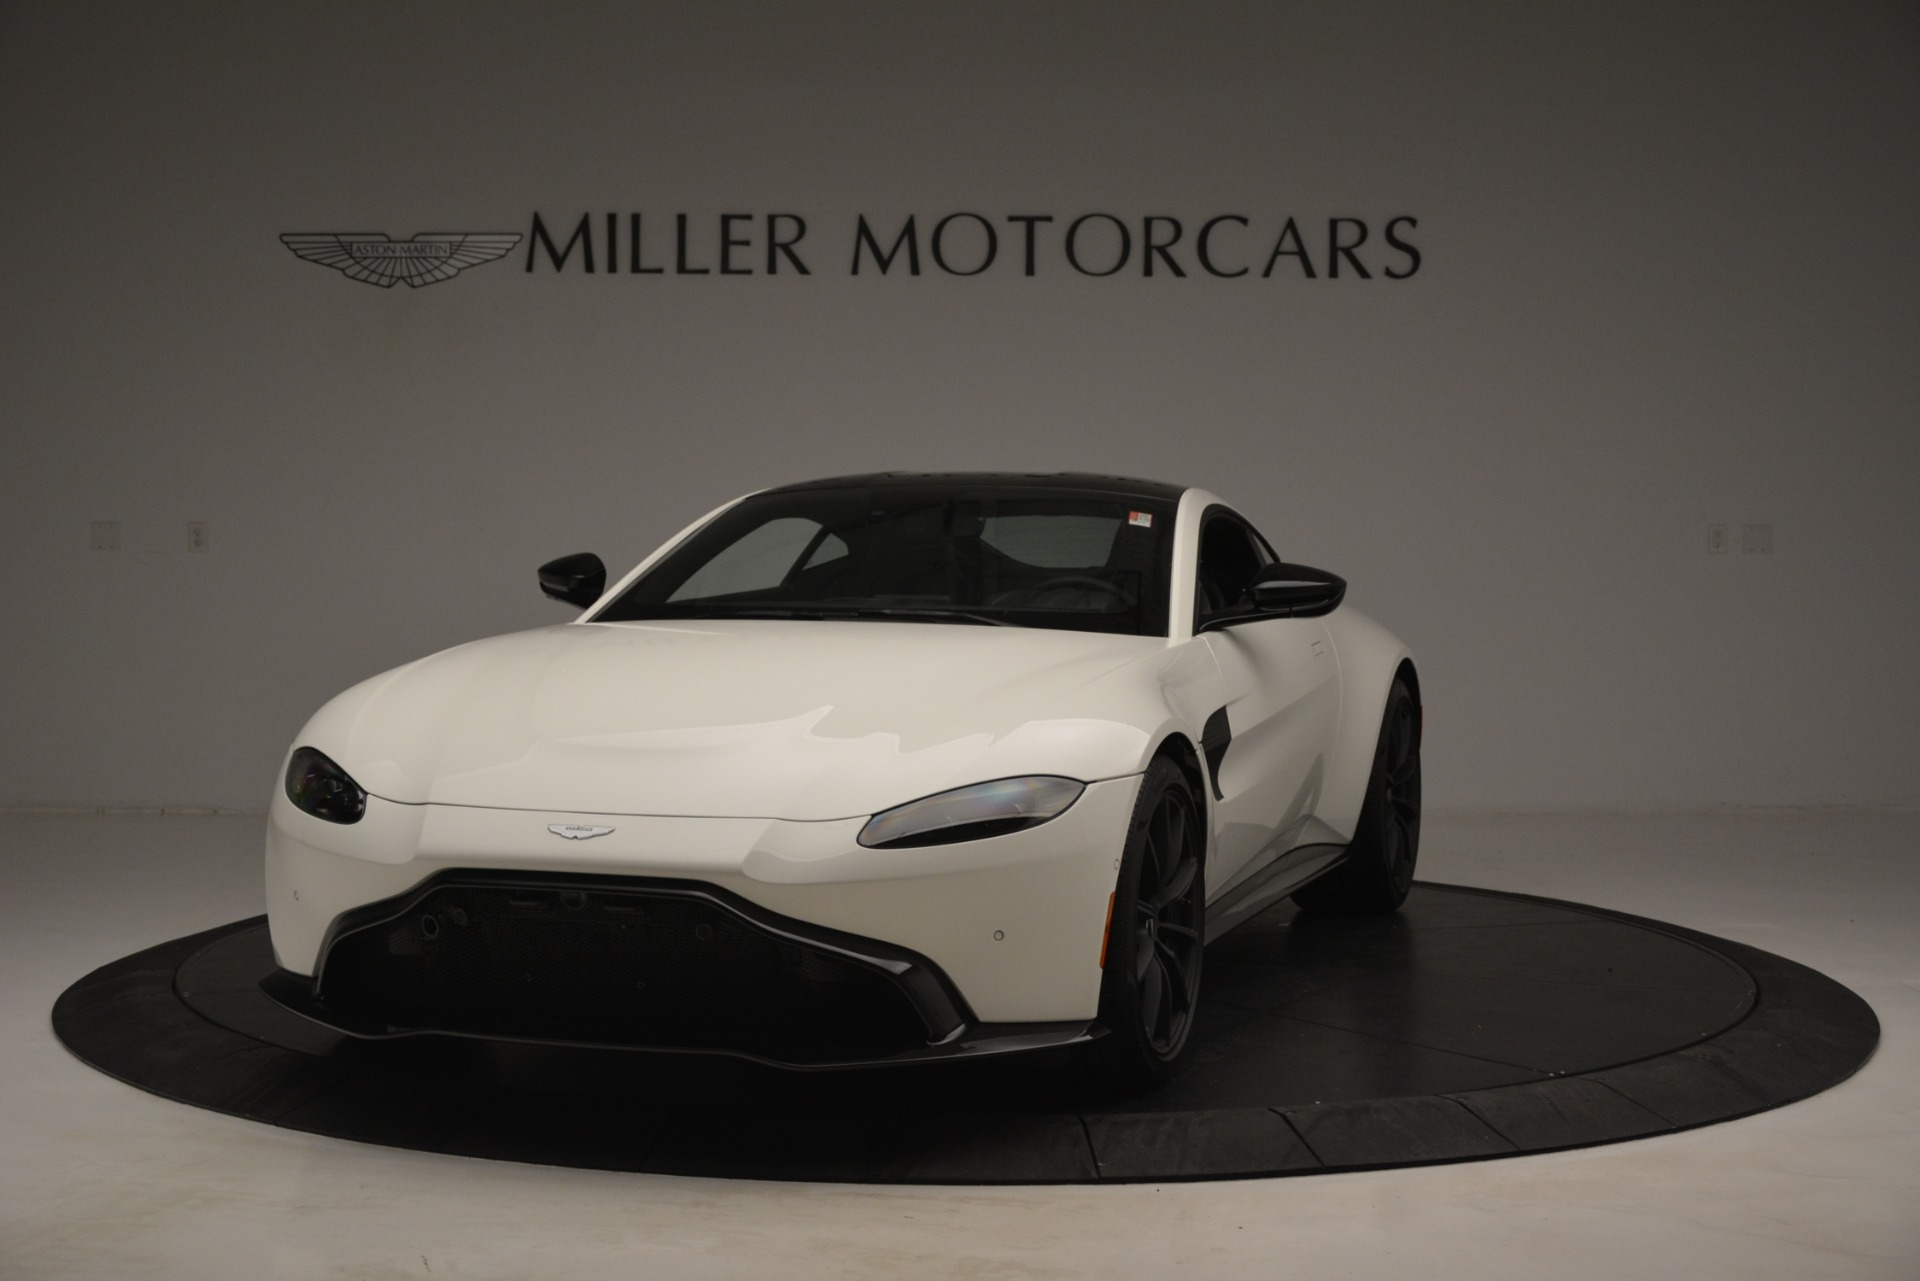 New 2019 Aston Martin Vantage V8 For Sale In Westport, CT 3053_p2